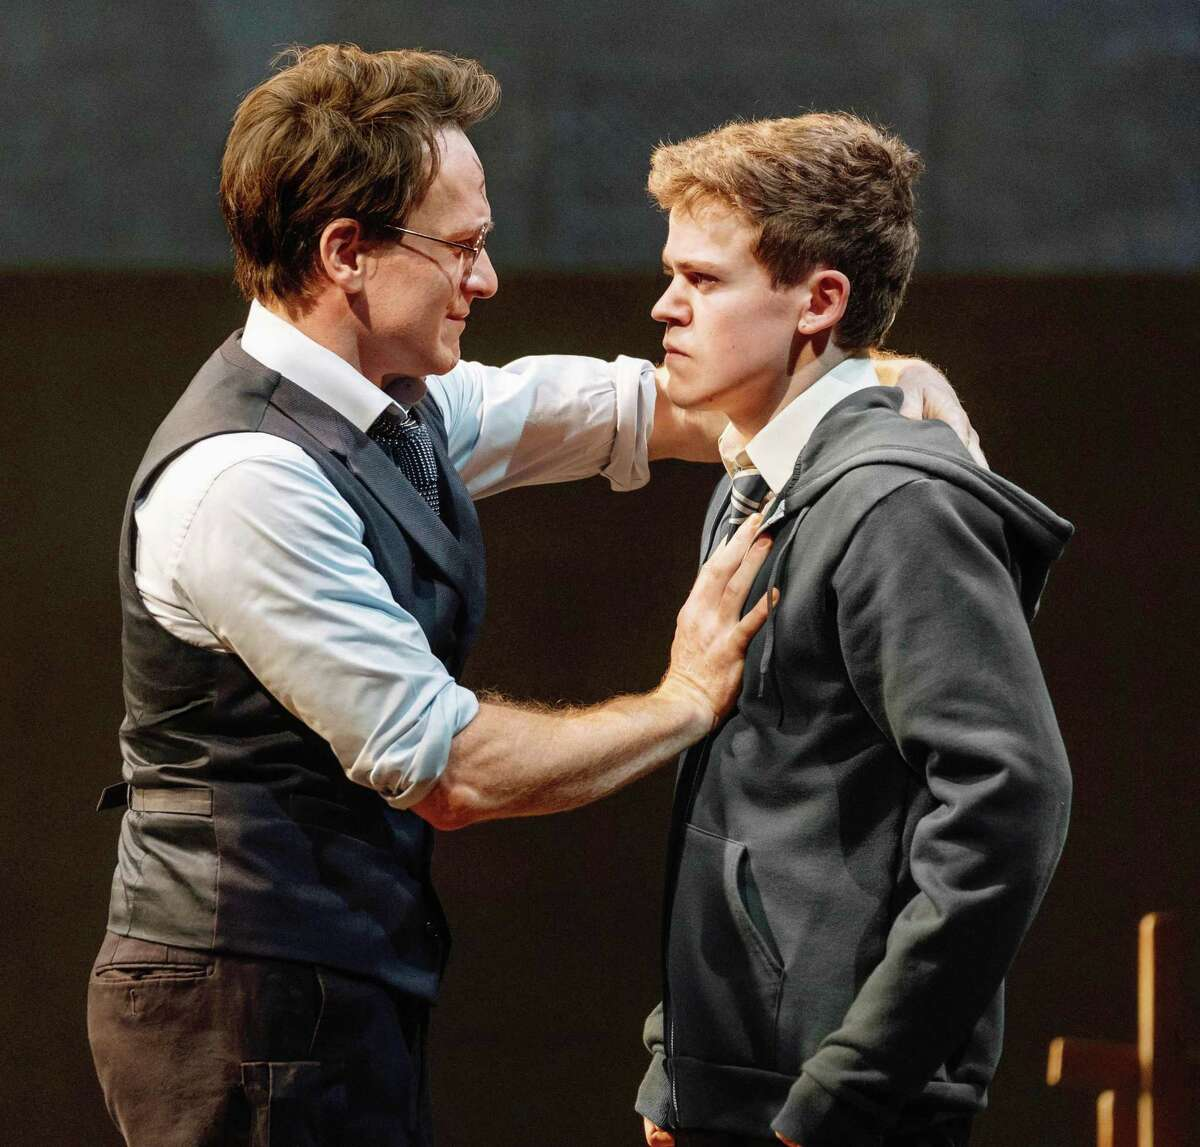 """Jamie Parker and Sam Clemmett, in """"Harry Potter and the Cursed Child"""" at New York's Lyric Theatre. Harry Potter and the Cursed Child"""" will make its West Coast premiere at the Curran theater in San Francisco in fall 2019, it was announced Thursday."""